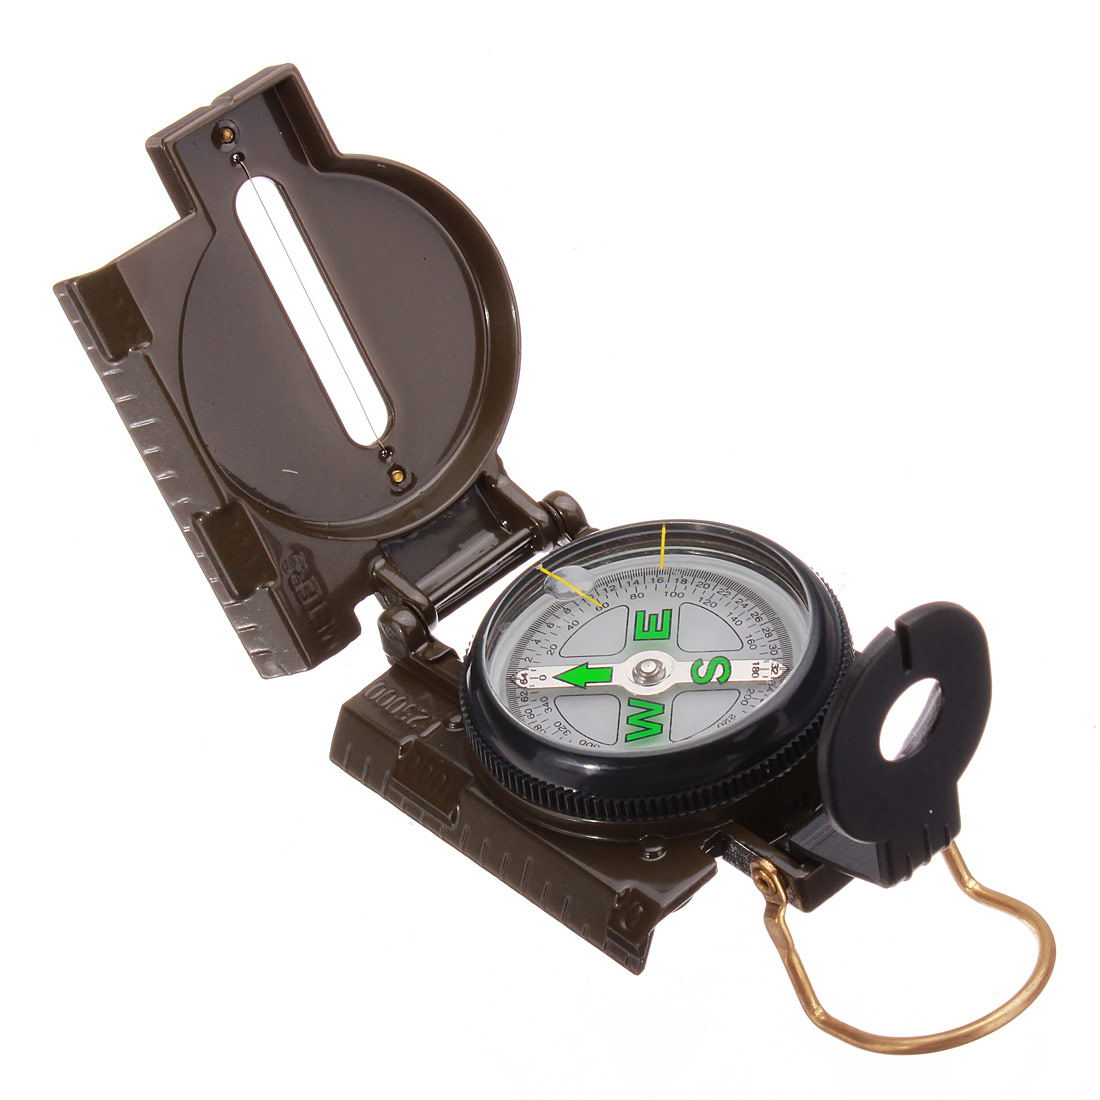 3 1 portable Army Green Folding Lens Compass Military Outdoor Hiking Camping Lens Survival Lensatic compass